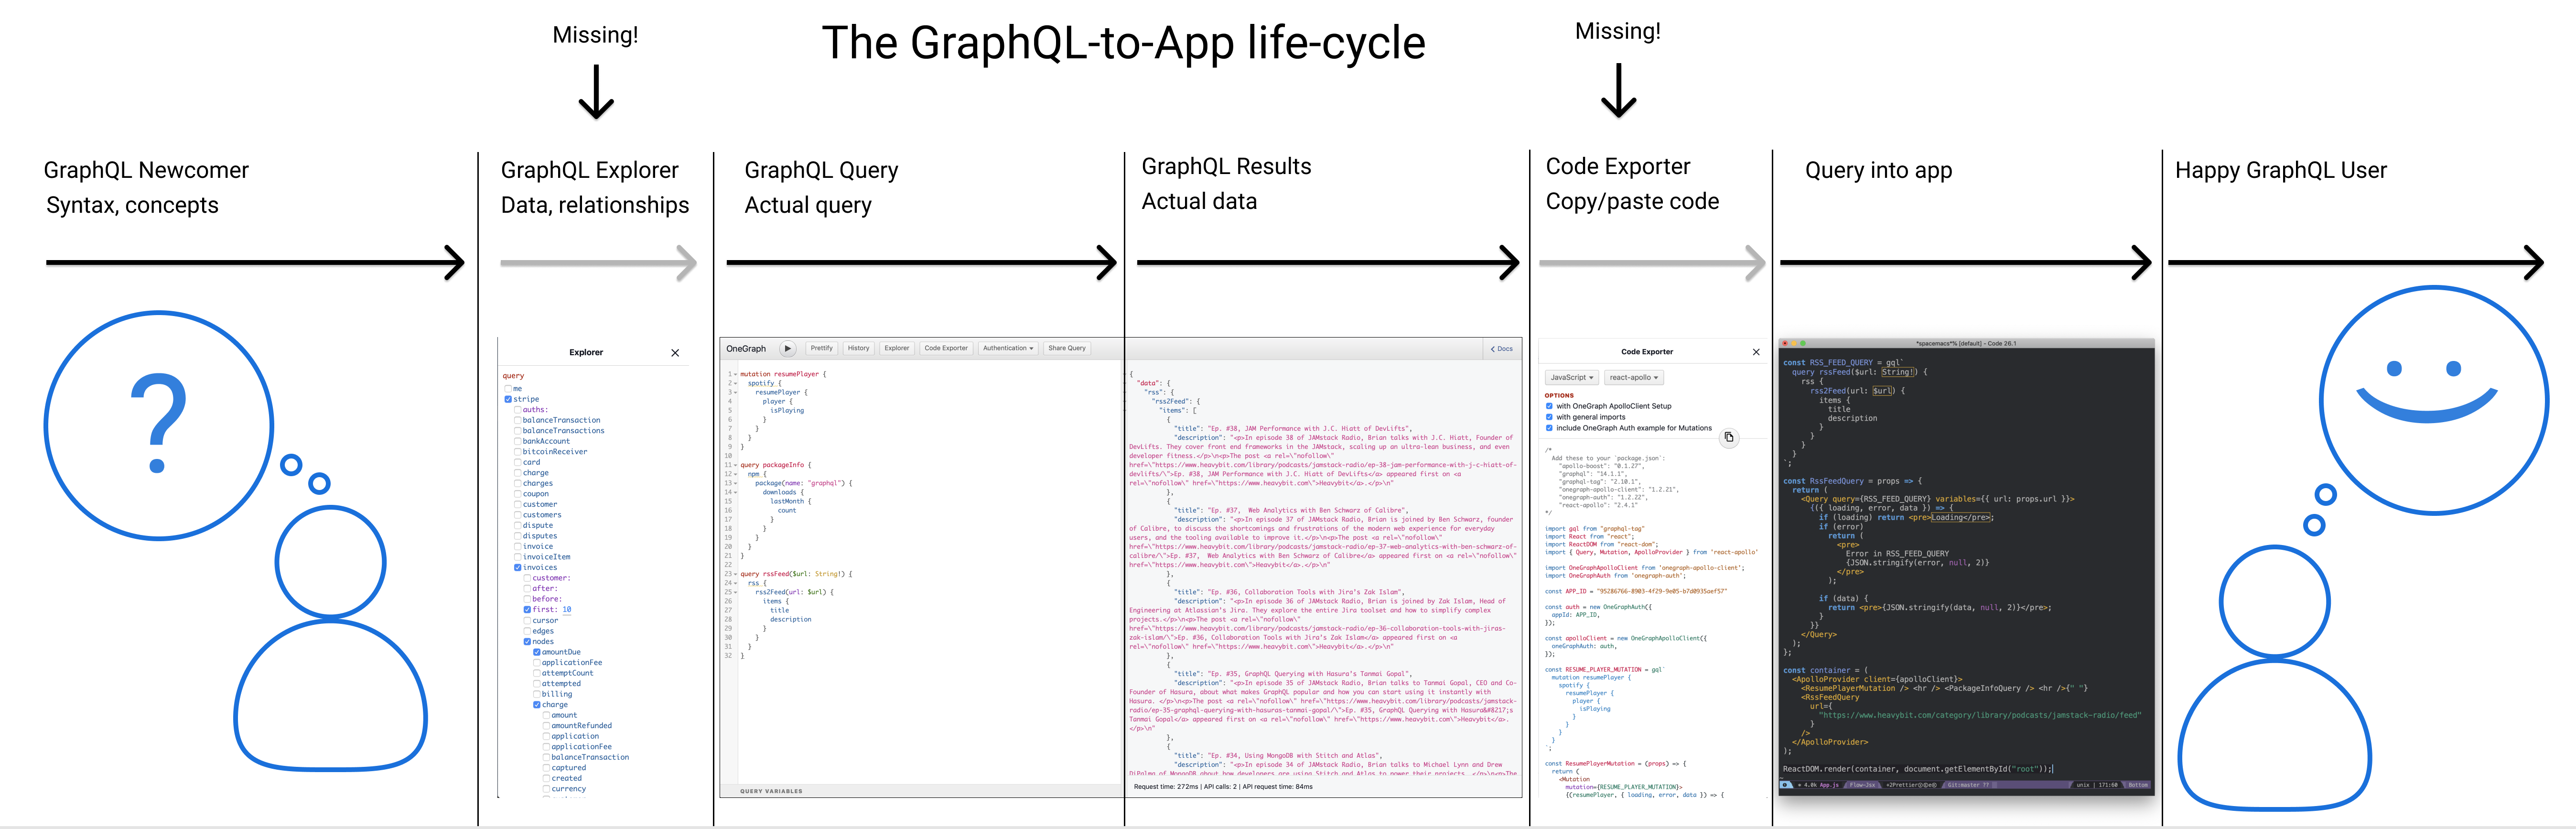 Filling in the GraphQL pipeline: Ready-to-use code generation ·